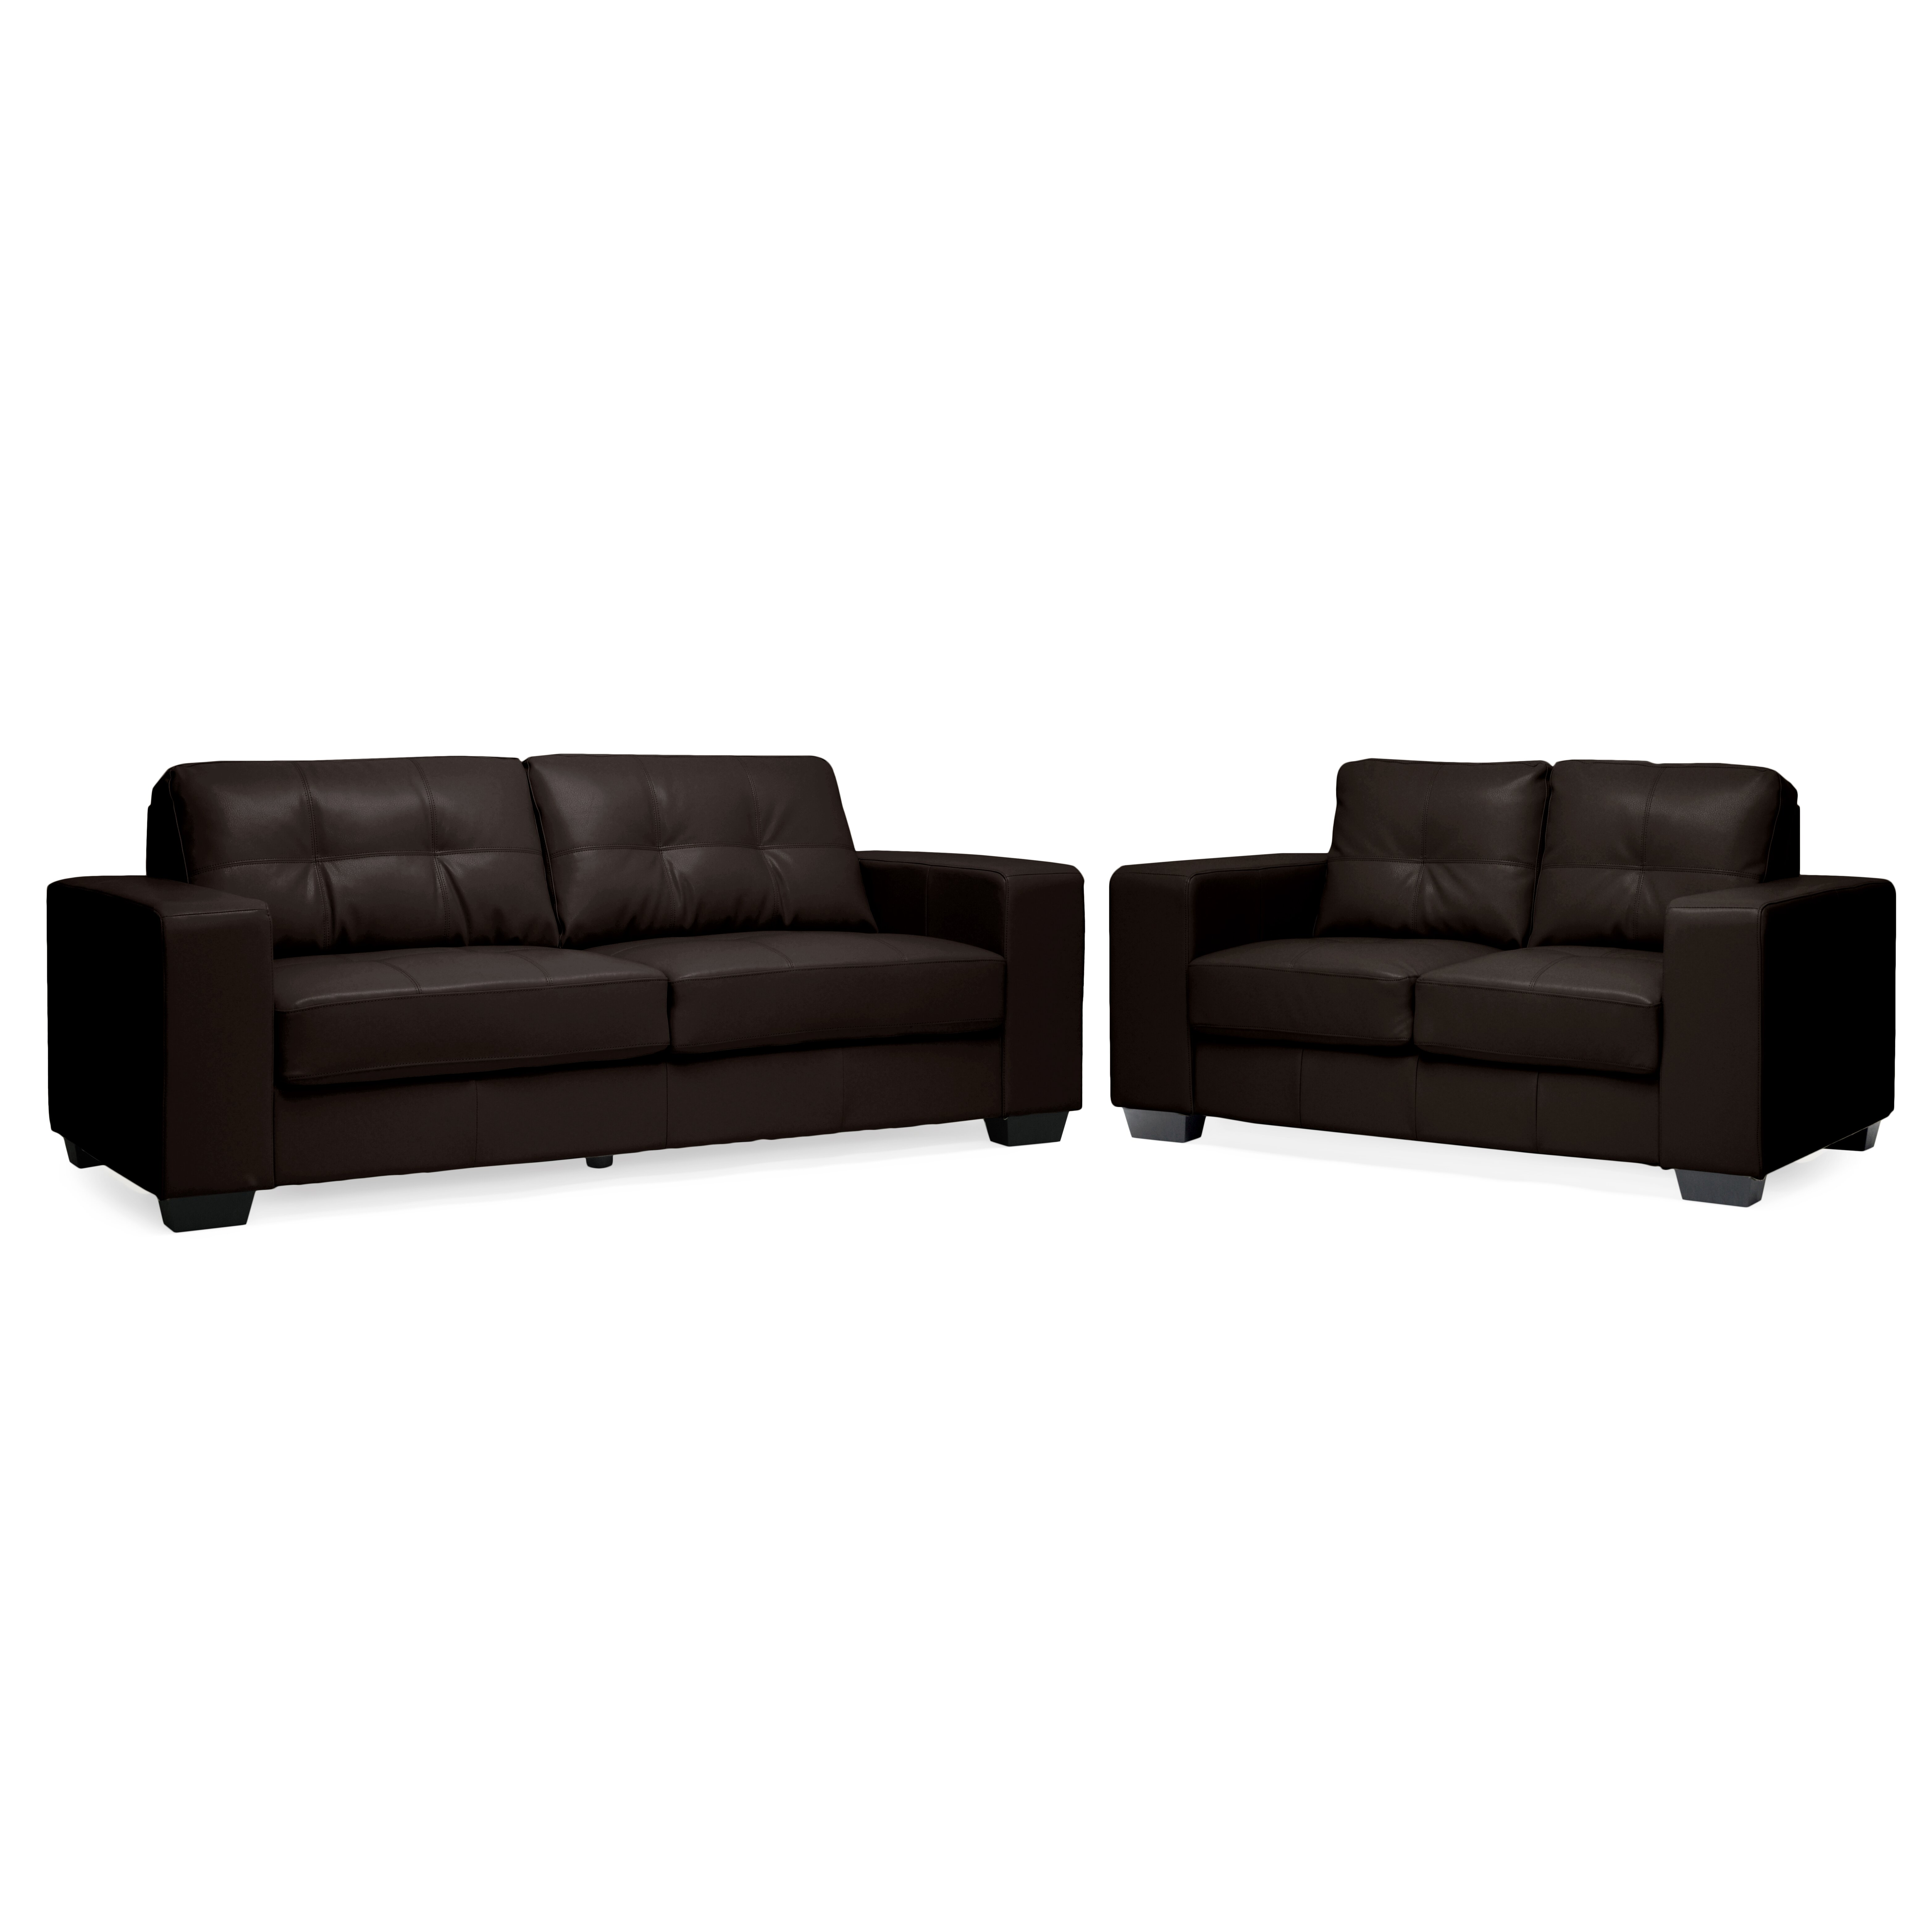 gallery images and information sofa set with low price list